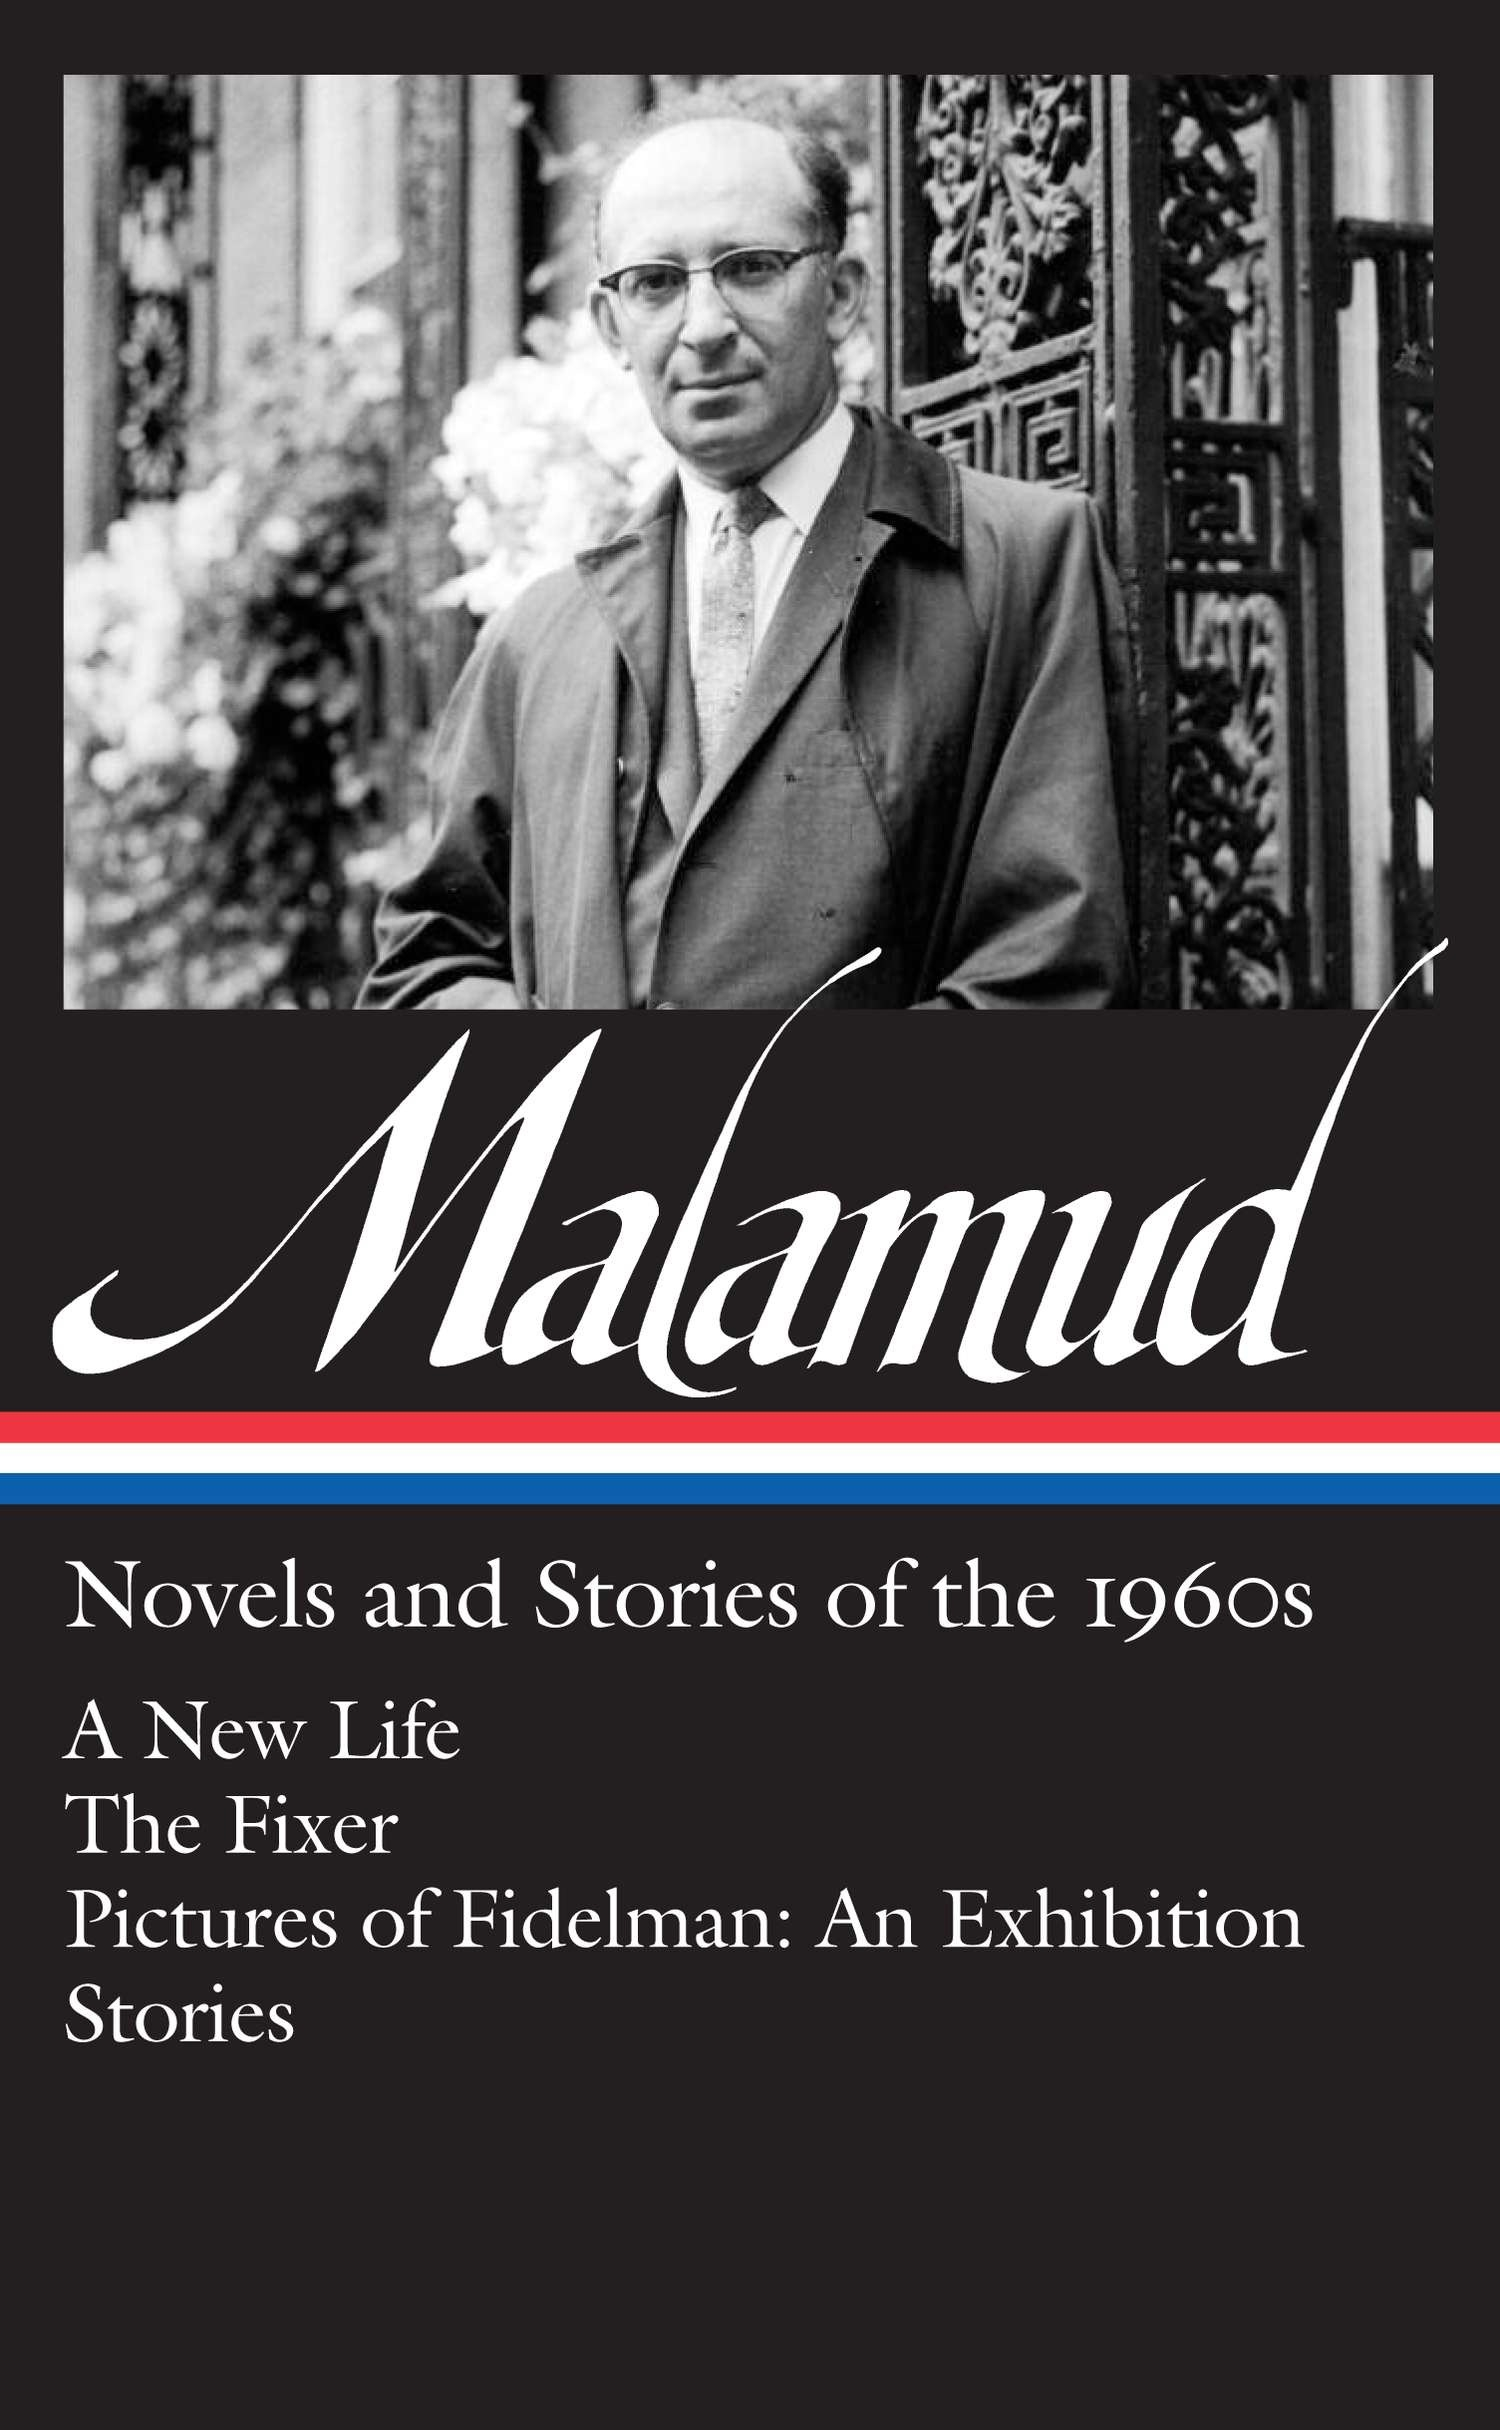 a literary analysis of jews in the magic barrel by bernard malamud In this new volume by mr malamud, there are thirteen stories, most of them set in the dingiest streets of a city which—whether it is named or not—one can assume always to be new york in addition there are three longish stories set in italy the people in mr malamud's new york streets are for the most part immigrant jews.